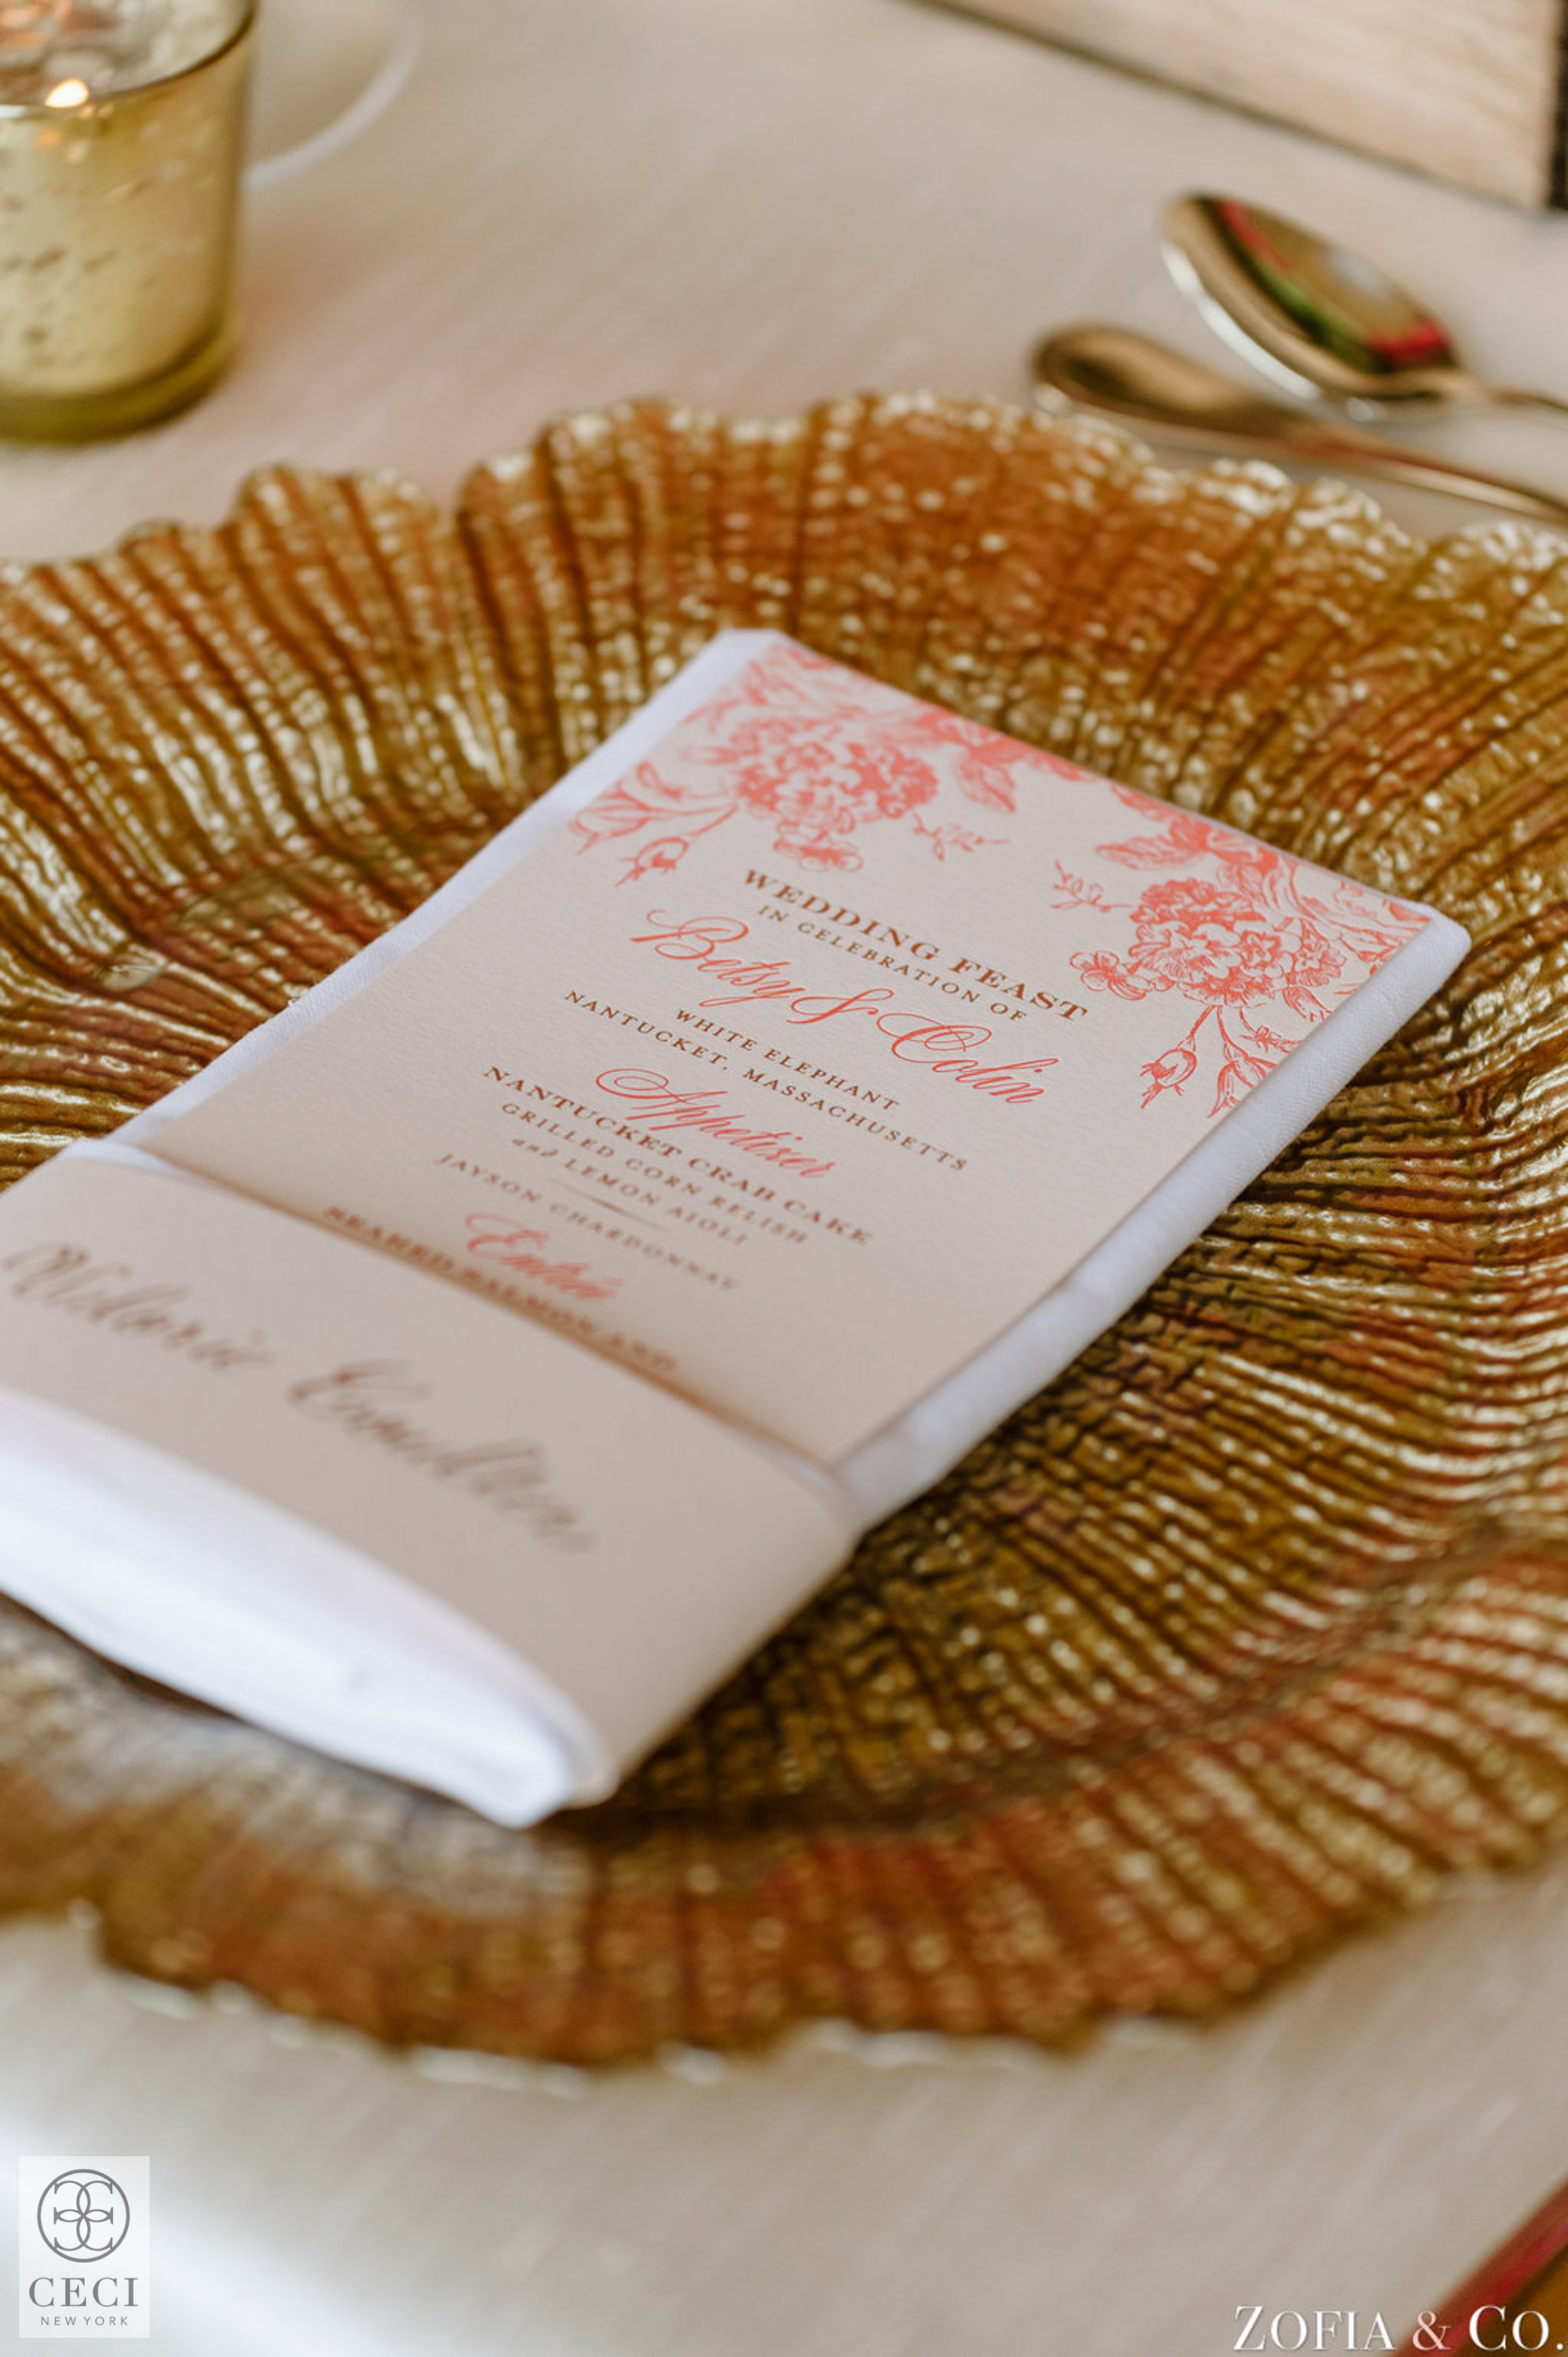 Ceci_New_York_Custom_Luxury_Wedding_LaserCut_Stationery_Personalized_Couture_Foil_Stamping_Black_Chic_ copy.jpg